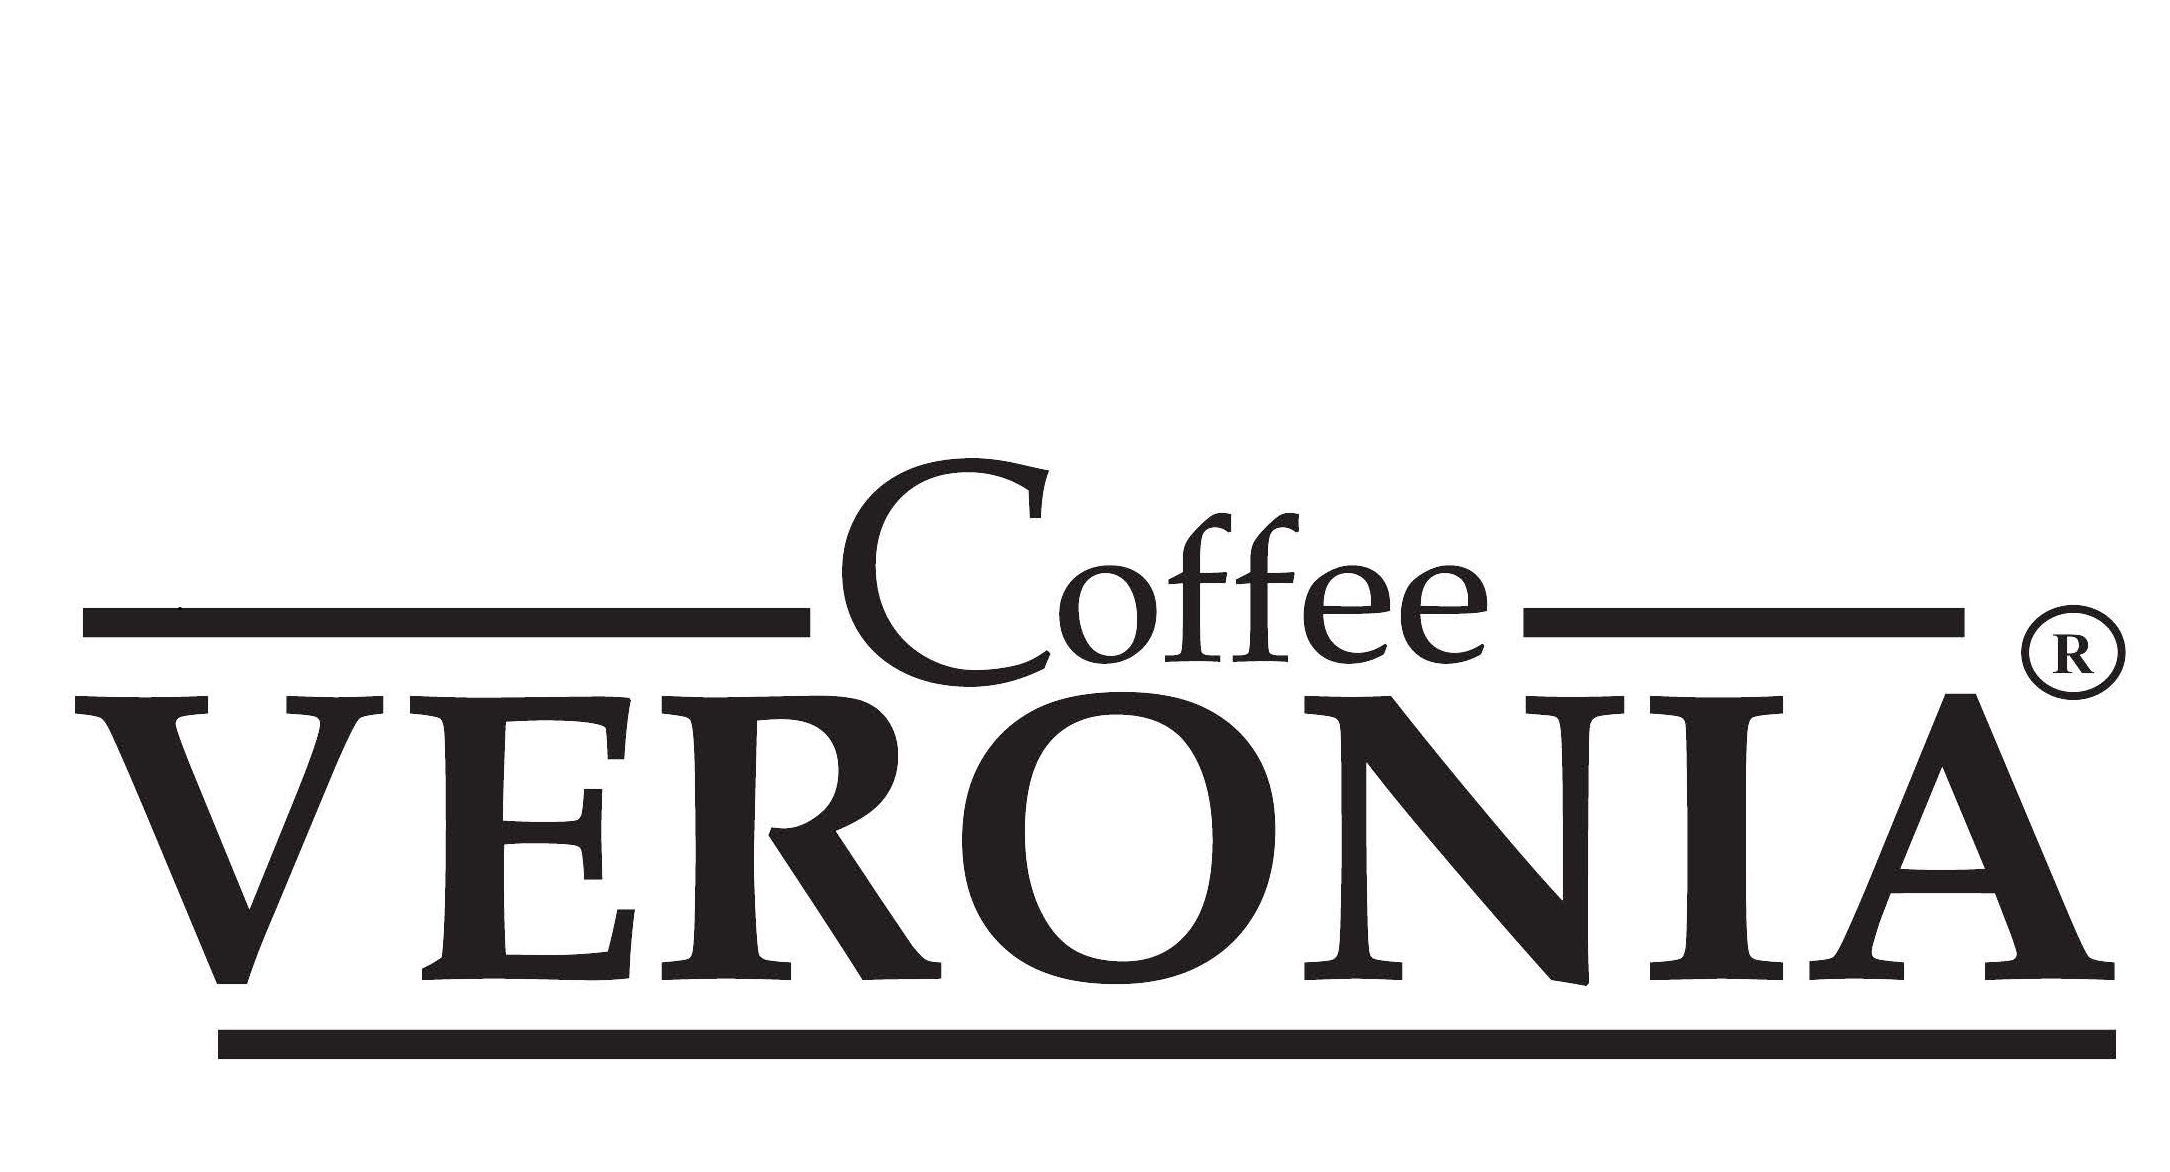 Coffee VERONIA